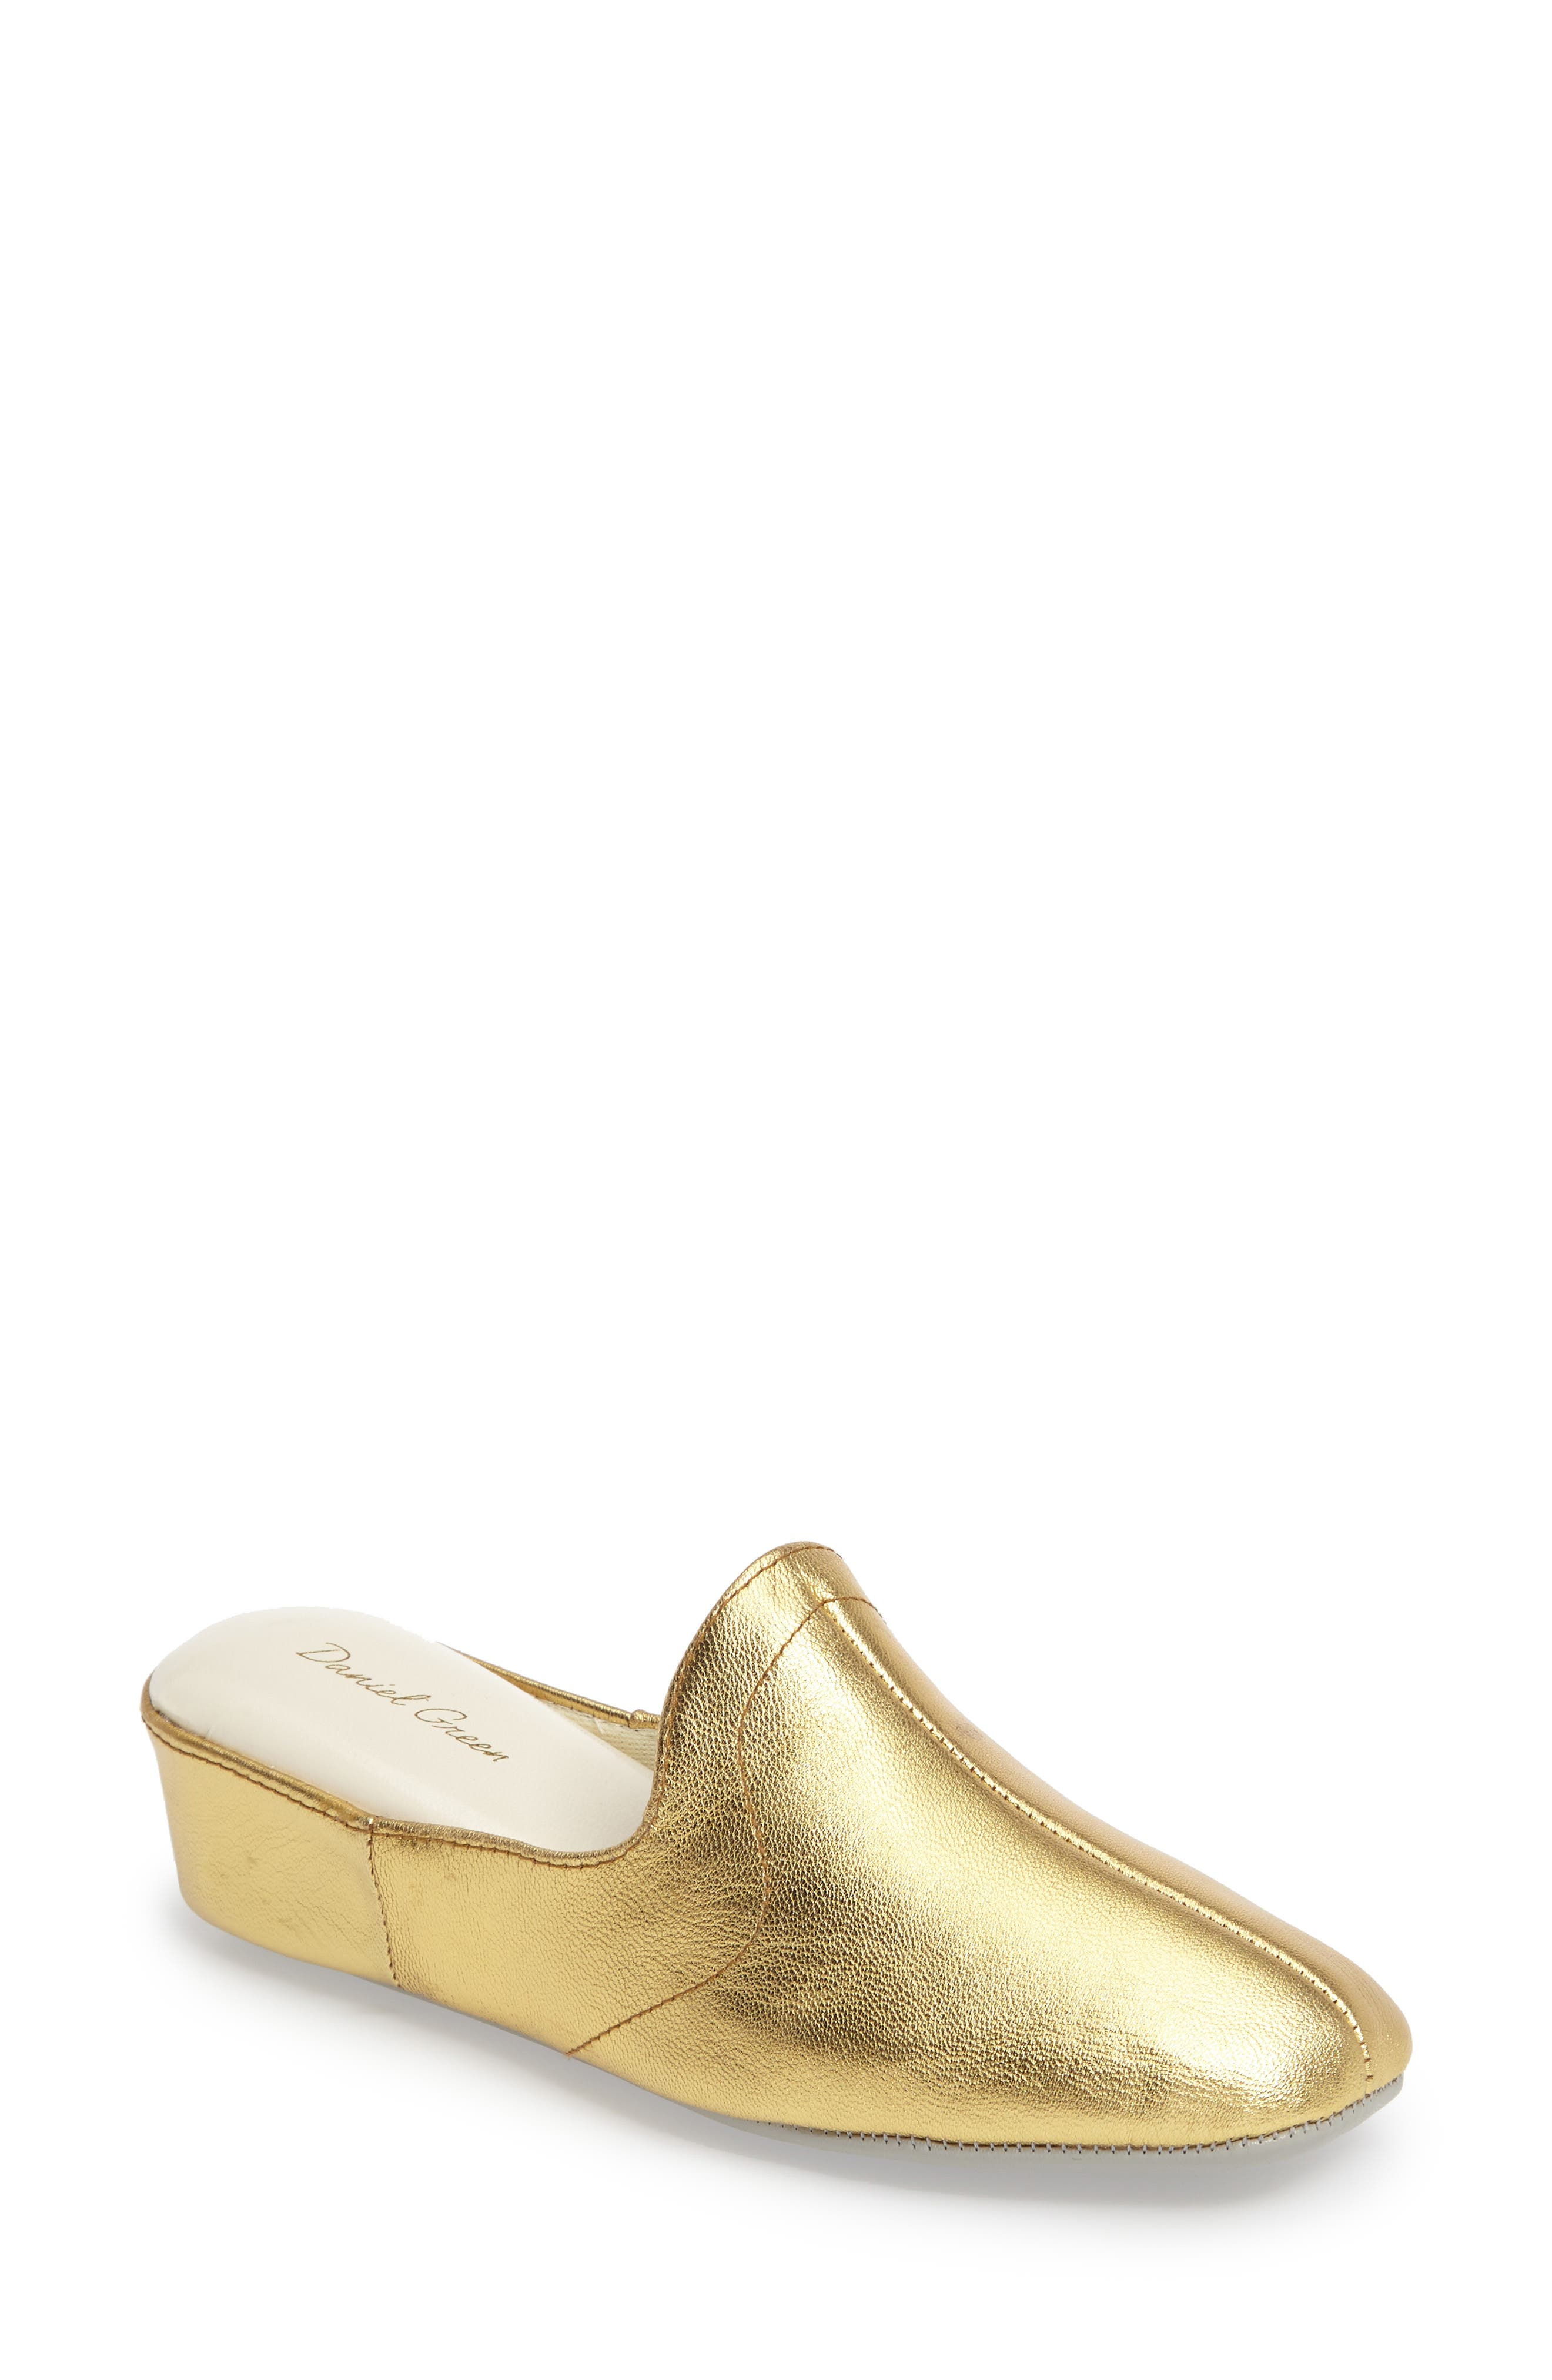 Glamour Scuff Slipper,                             Main thumbnail 1, color,                             Gold Leather